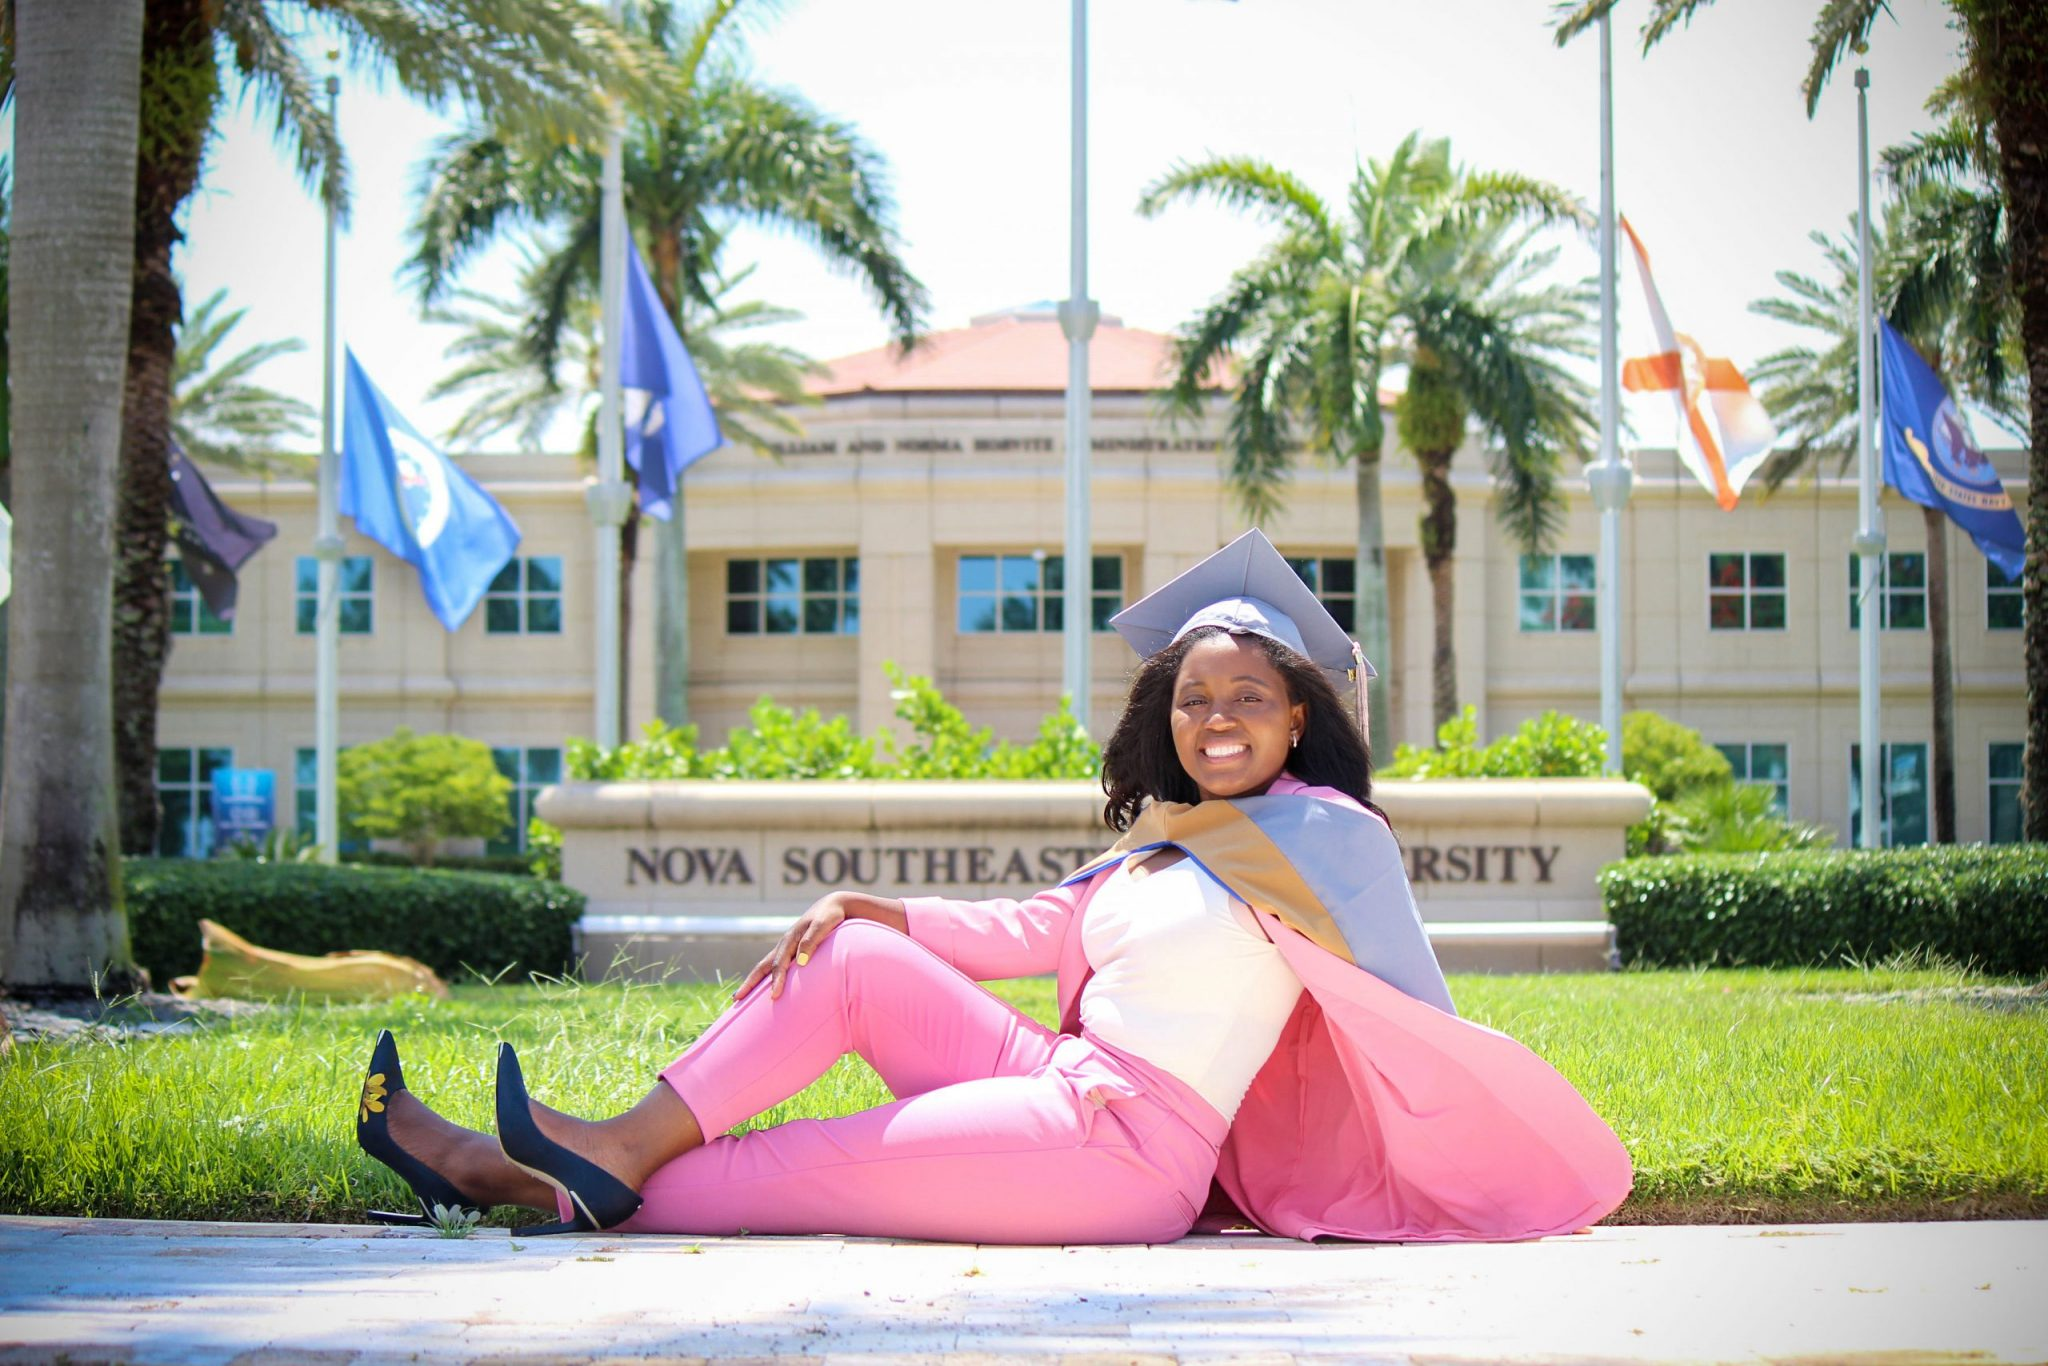 Paunise posing in front of the NOVA sign after earning her MBA